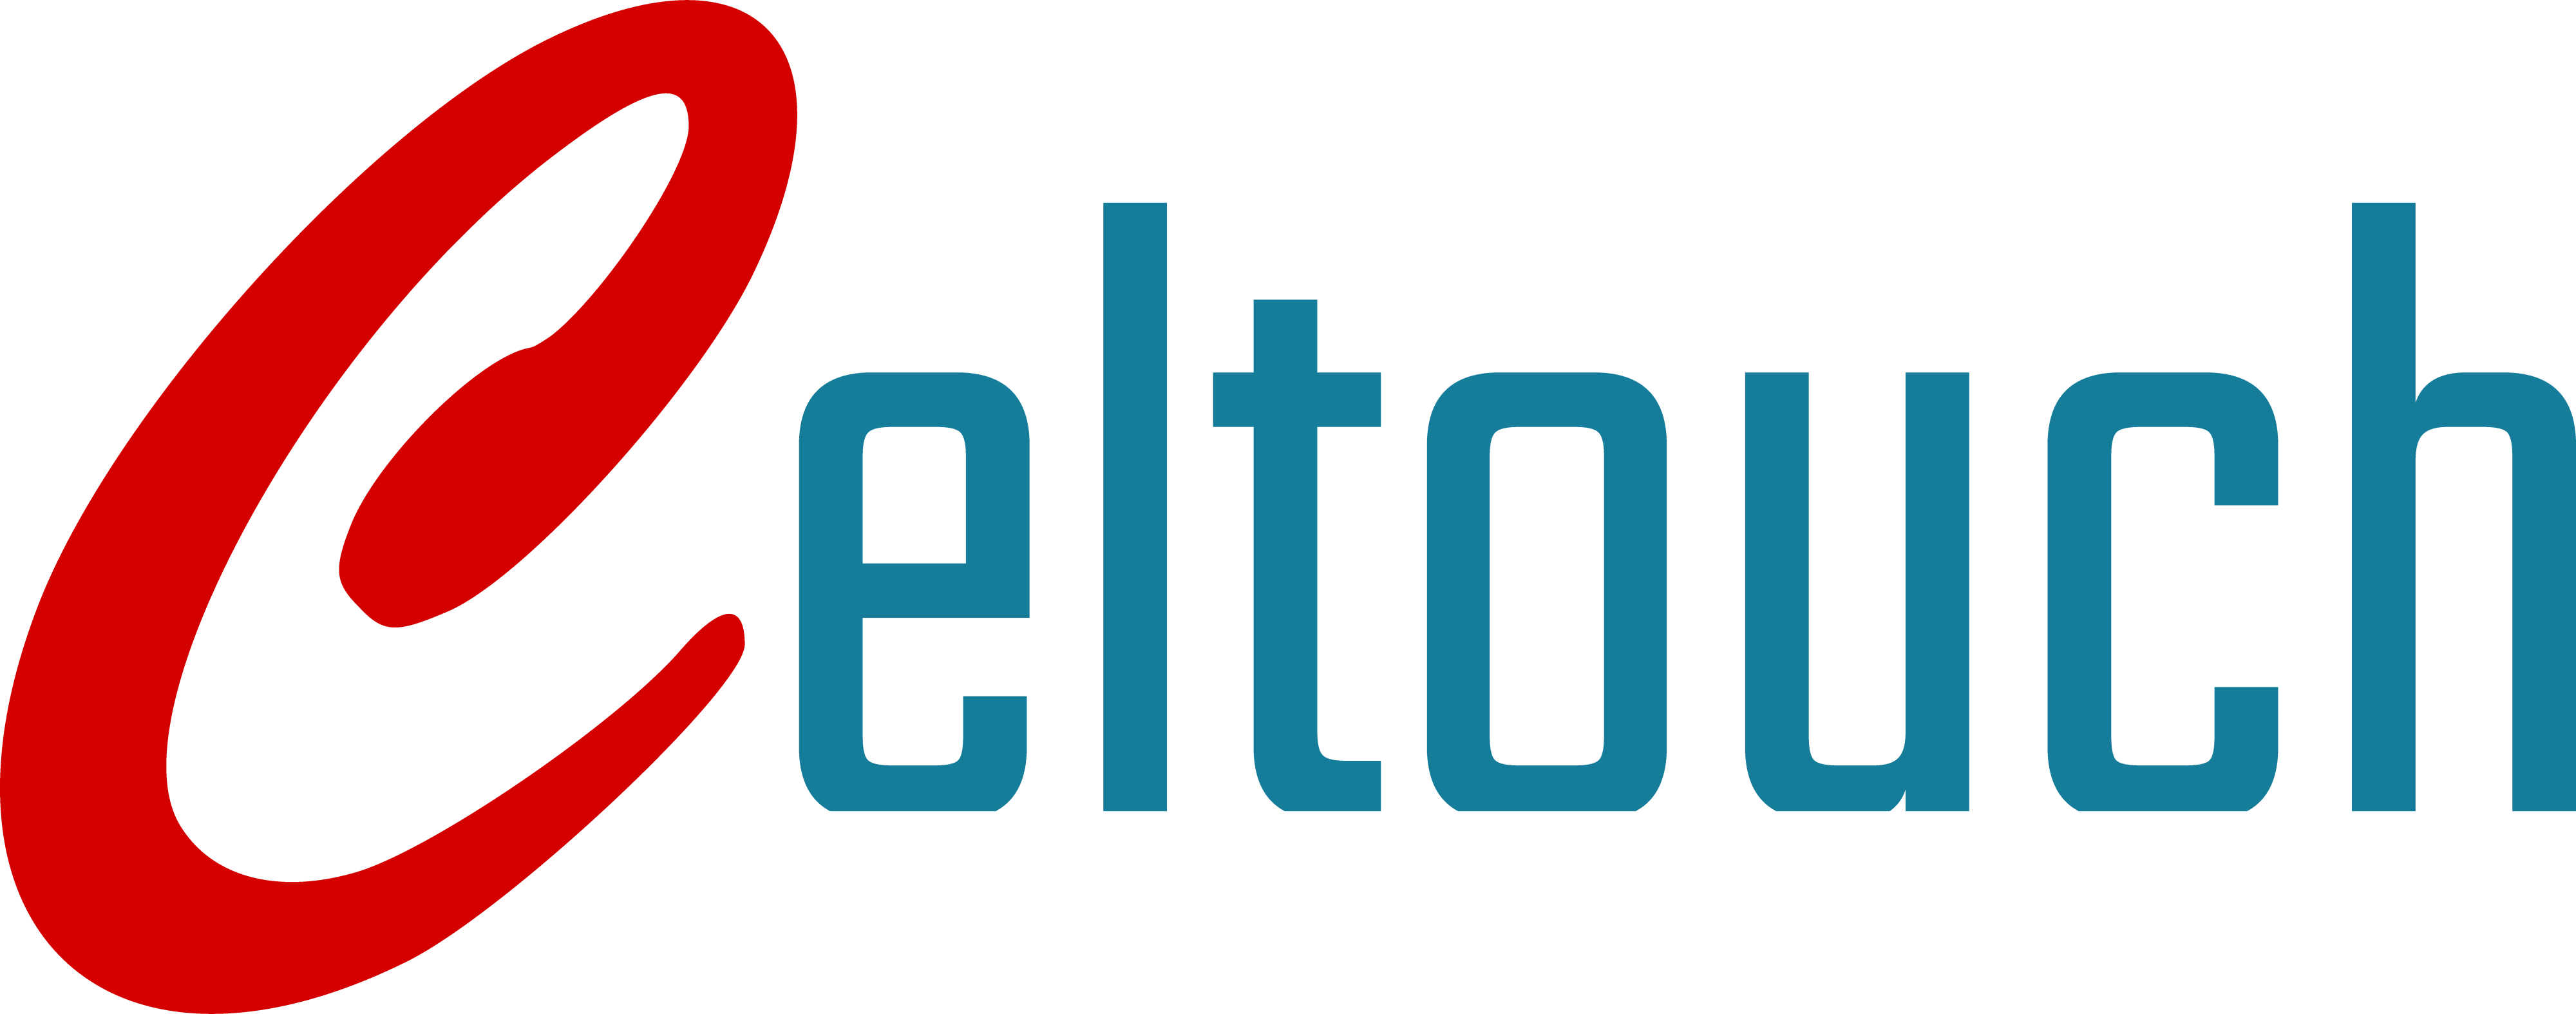 Celtouch